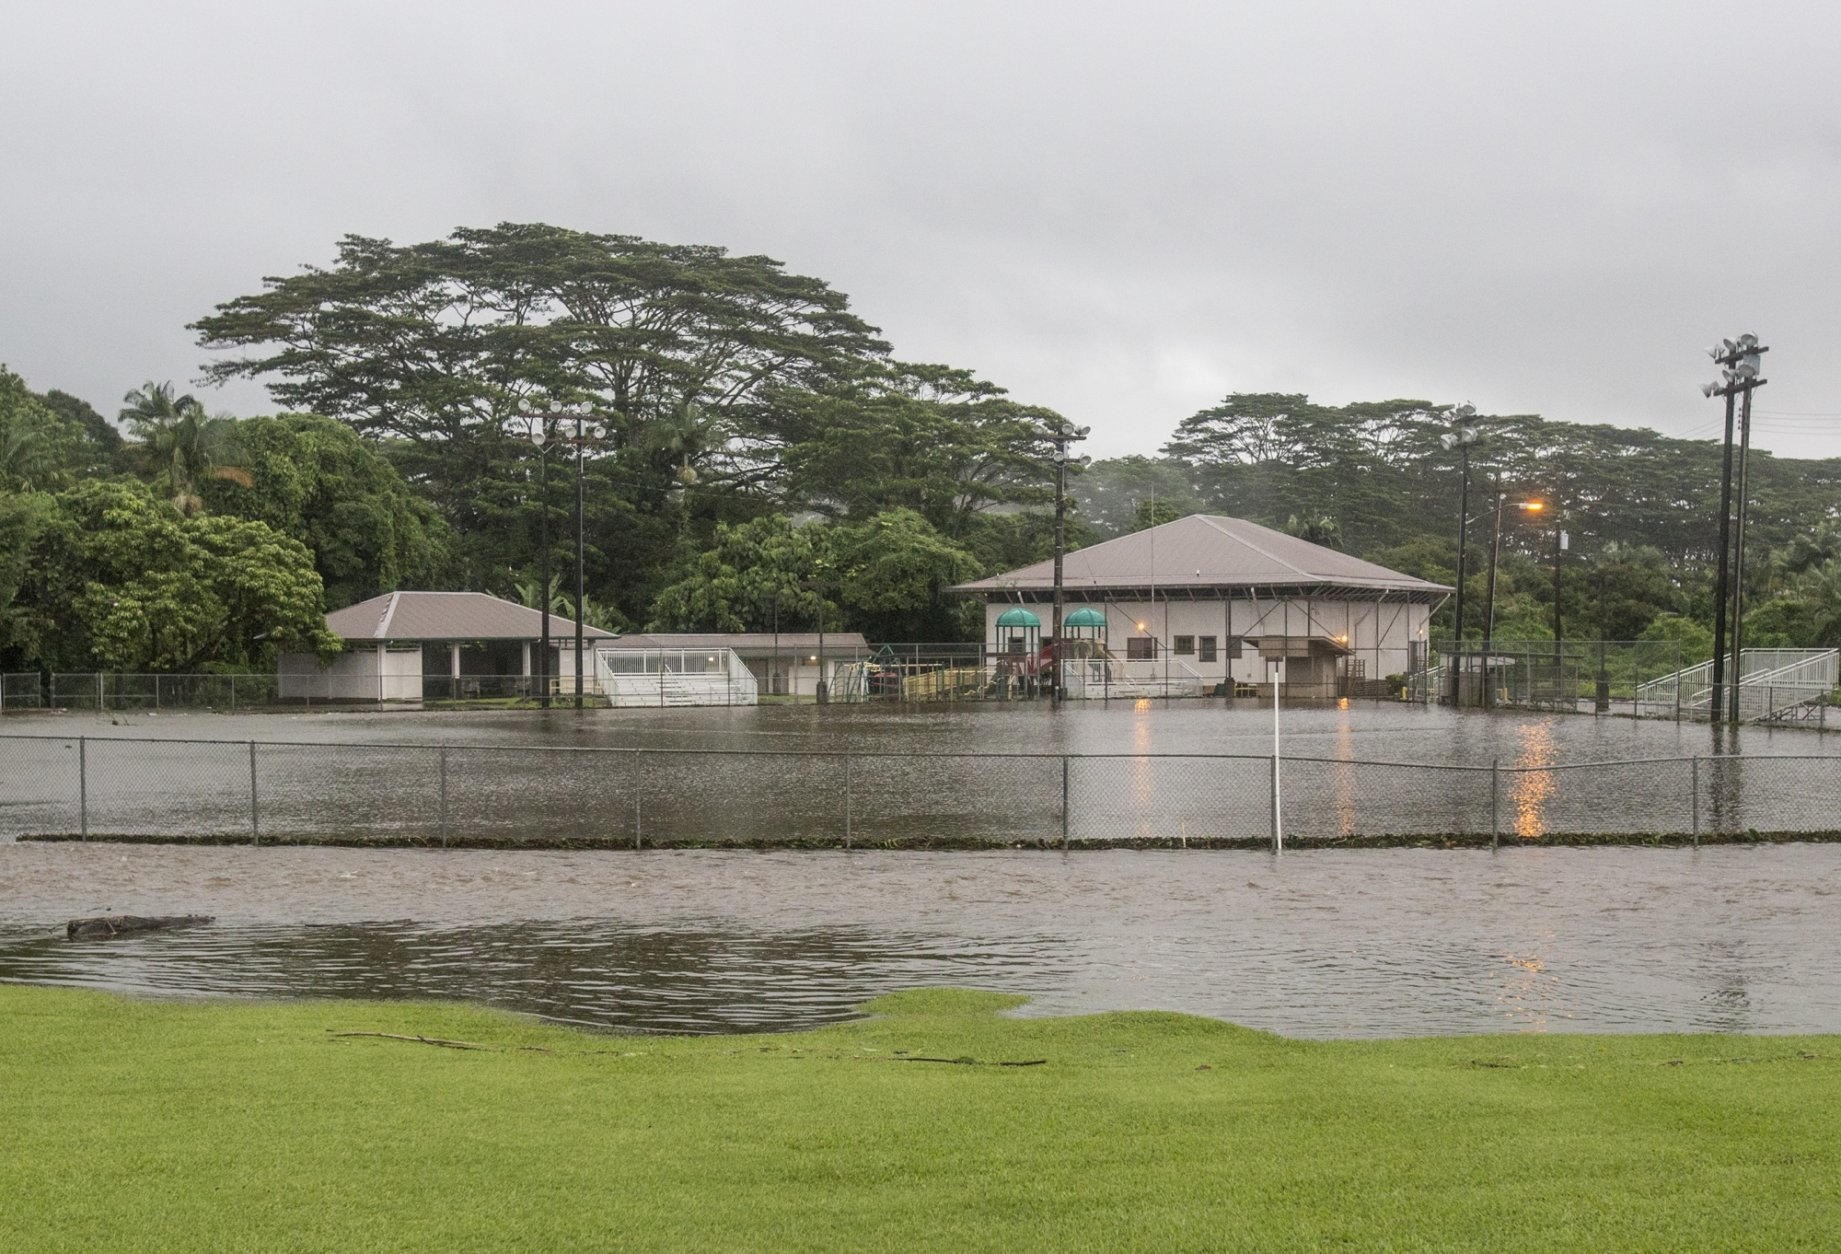 Park fields are flooded from heavy rains Thursday, Aug. 23, 2018, in Hilo, Hawaii. Hurricane Lane soaked Hawaii's Big Island on Thursday, dumping nearly 20 inches of rain in nearly 24 hours as residents stocked up on supplies and tried to protect their homes ahead of the state's first hurricane since 1992. (Hollyn Johnson/Hawaii Tribune-Herald via AP)